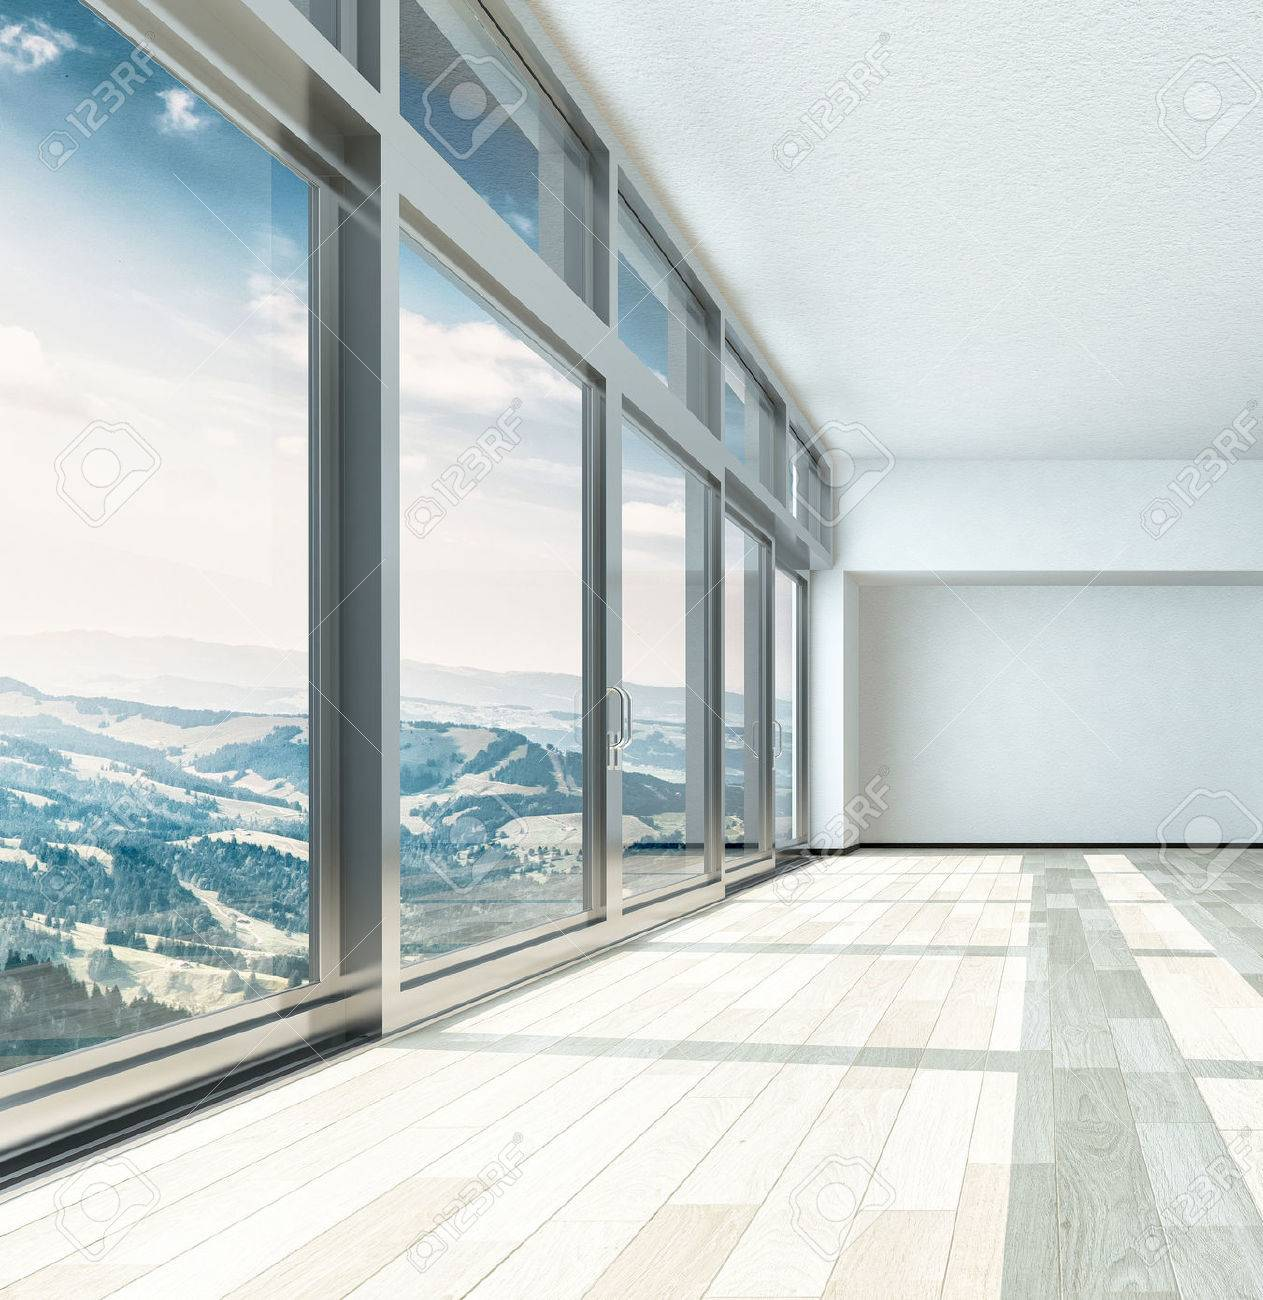 Empty living room with large windows can be as background stock - Empty Living Room With Large Windows Can Be As Background Stock Overlooking View From Large Download